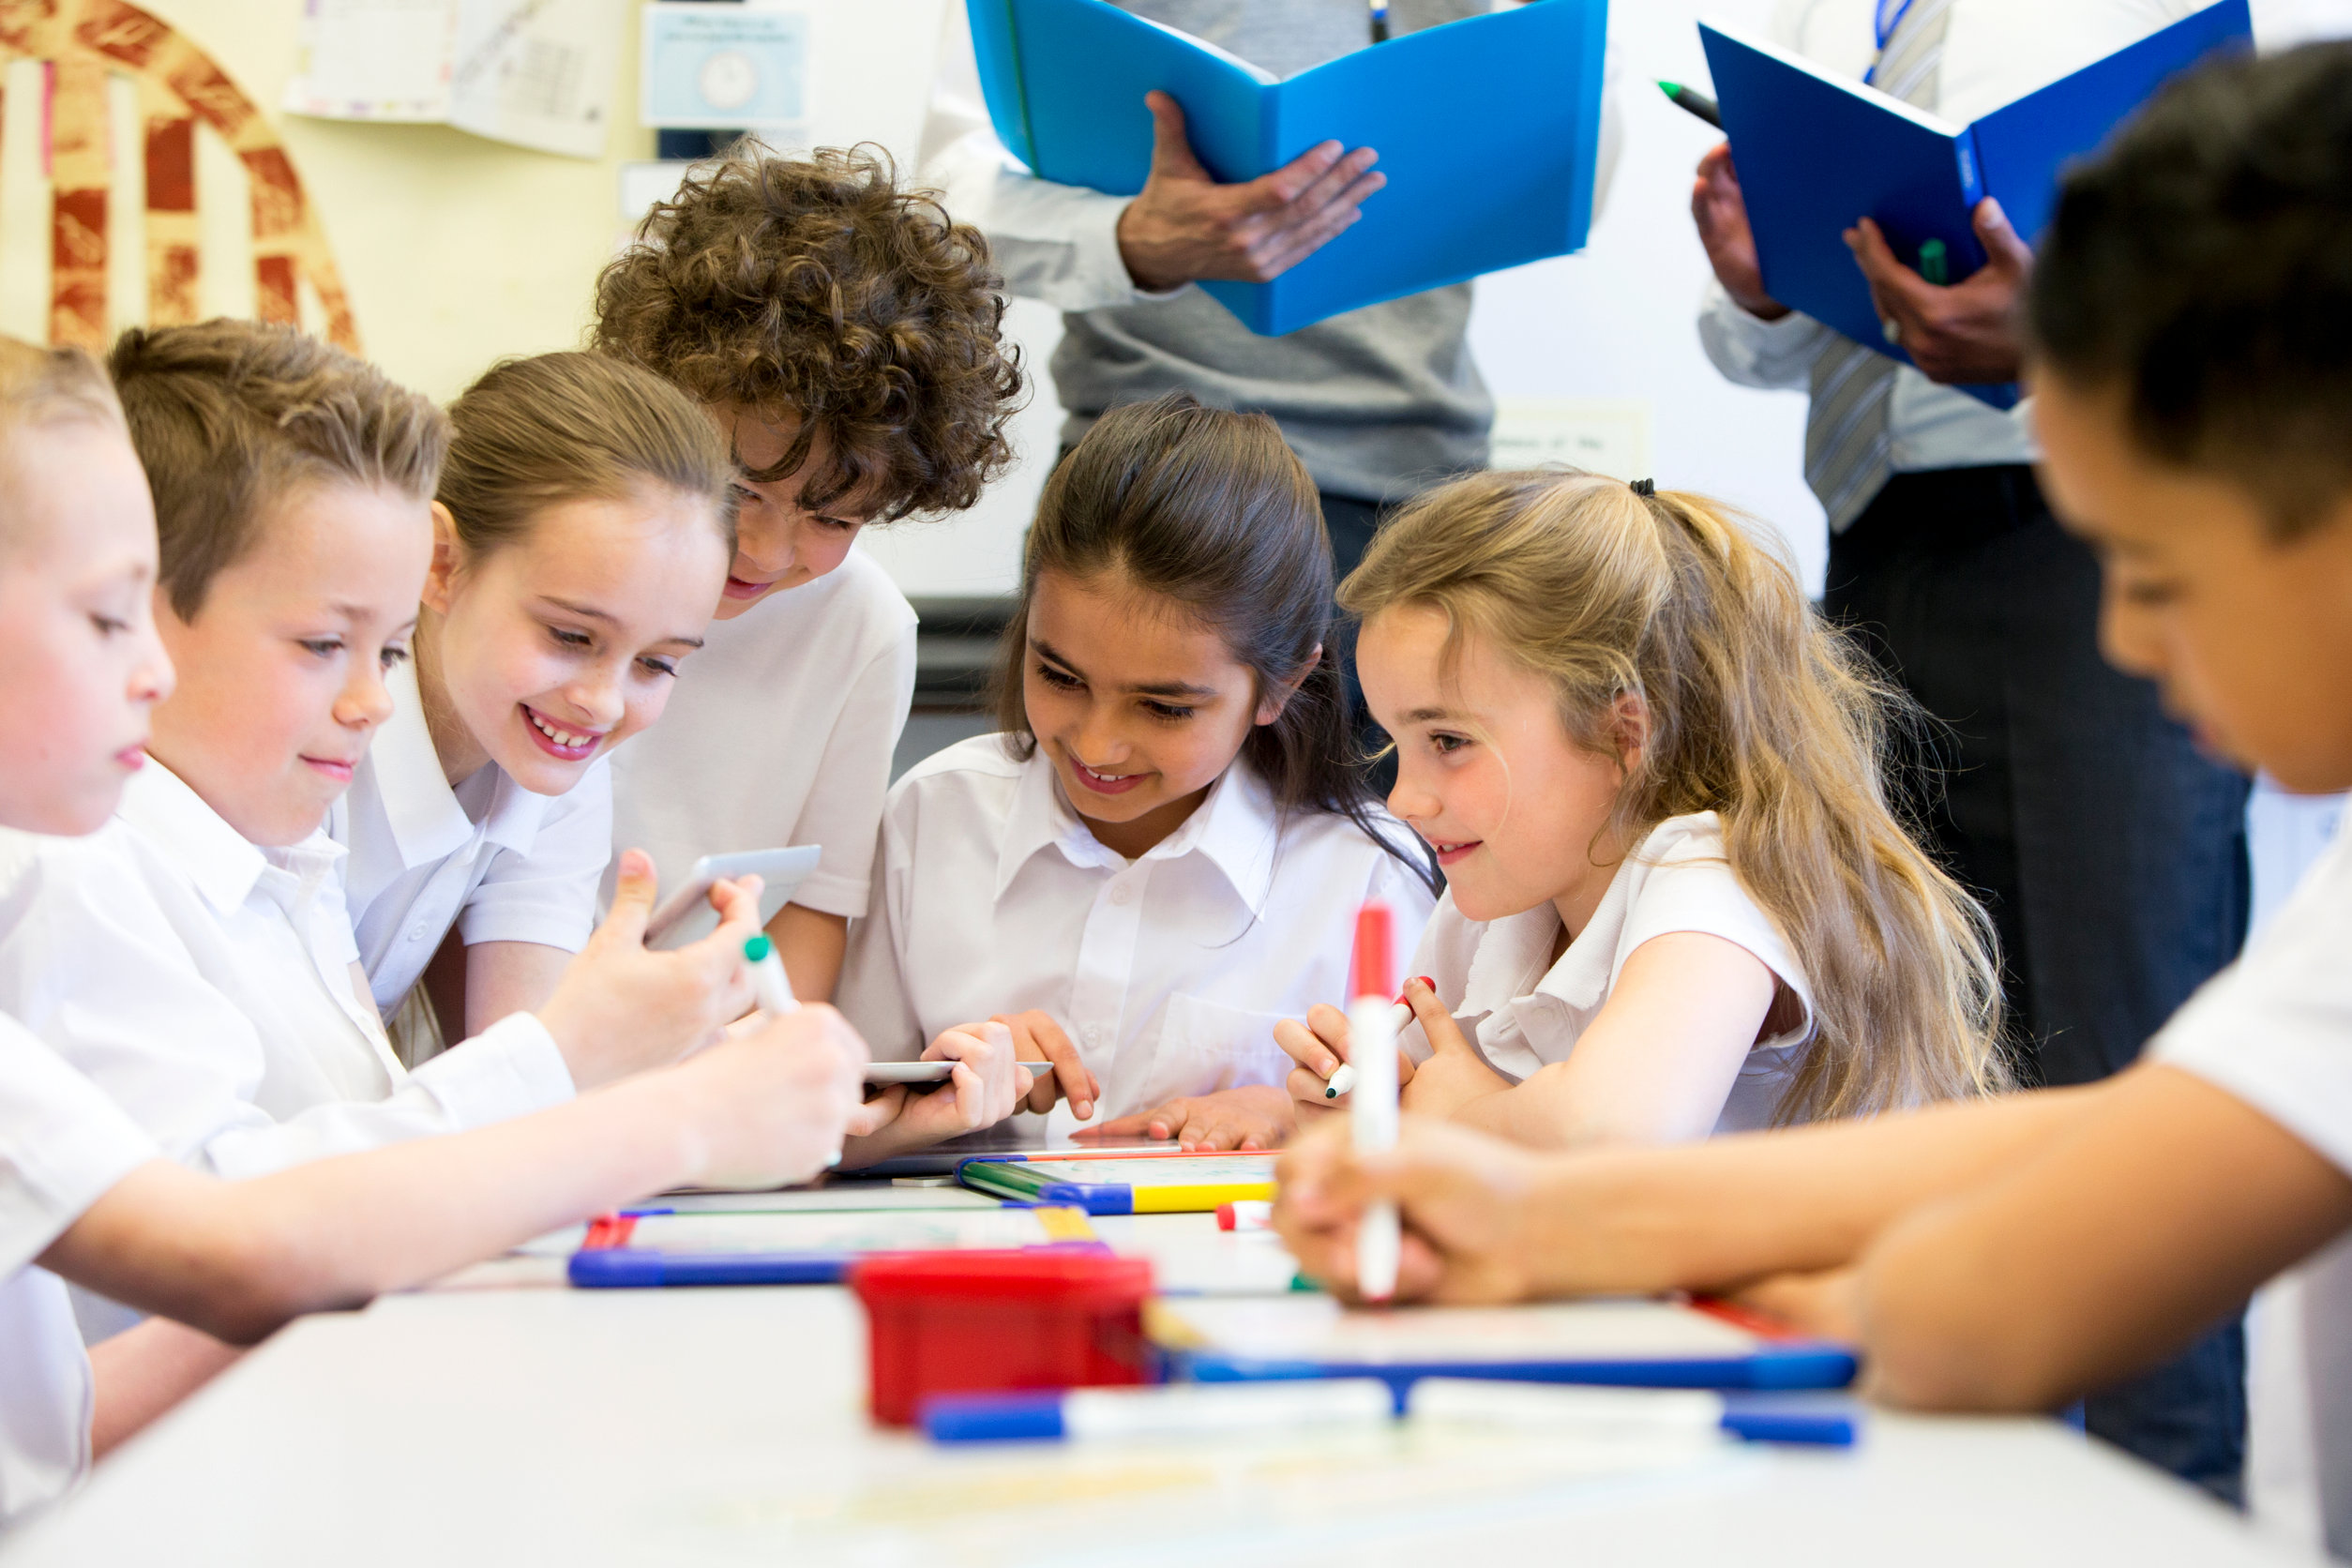 How To Prepare A Mental Health Policy For Schools